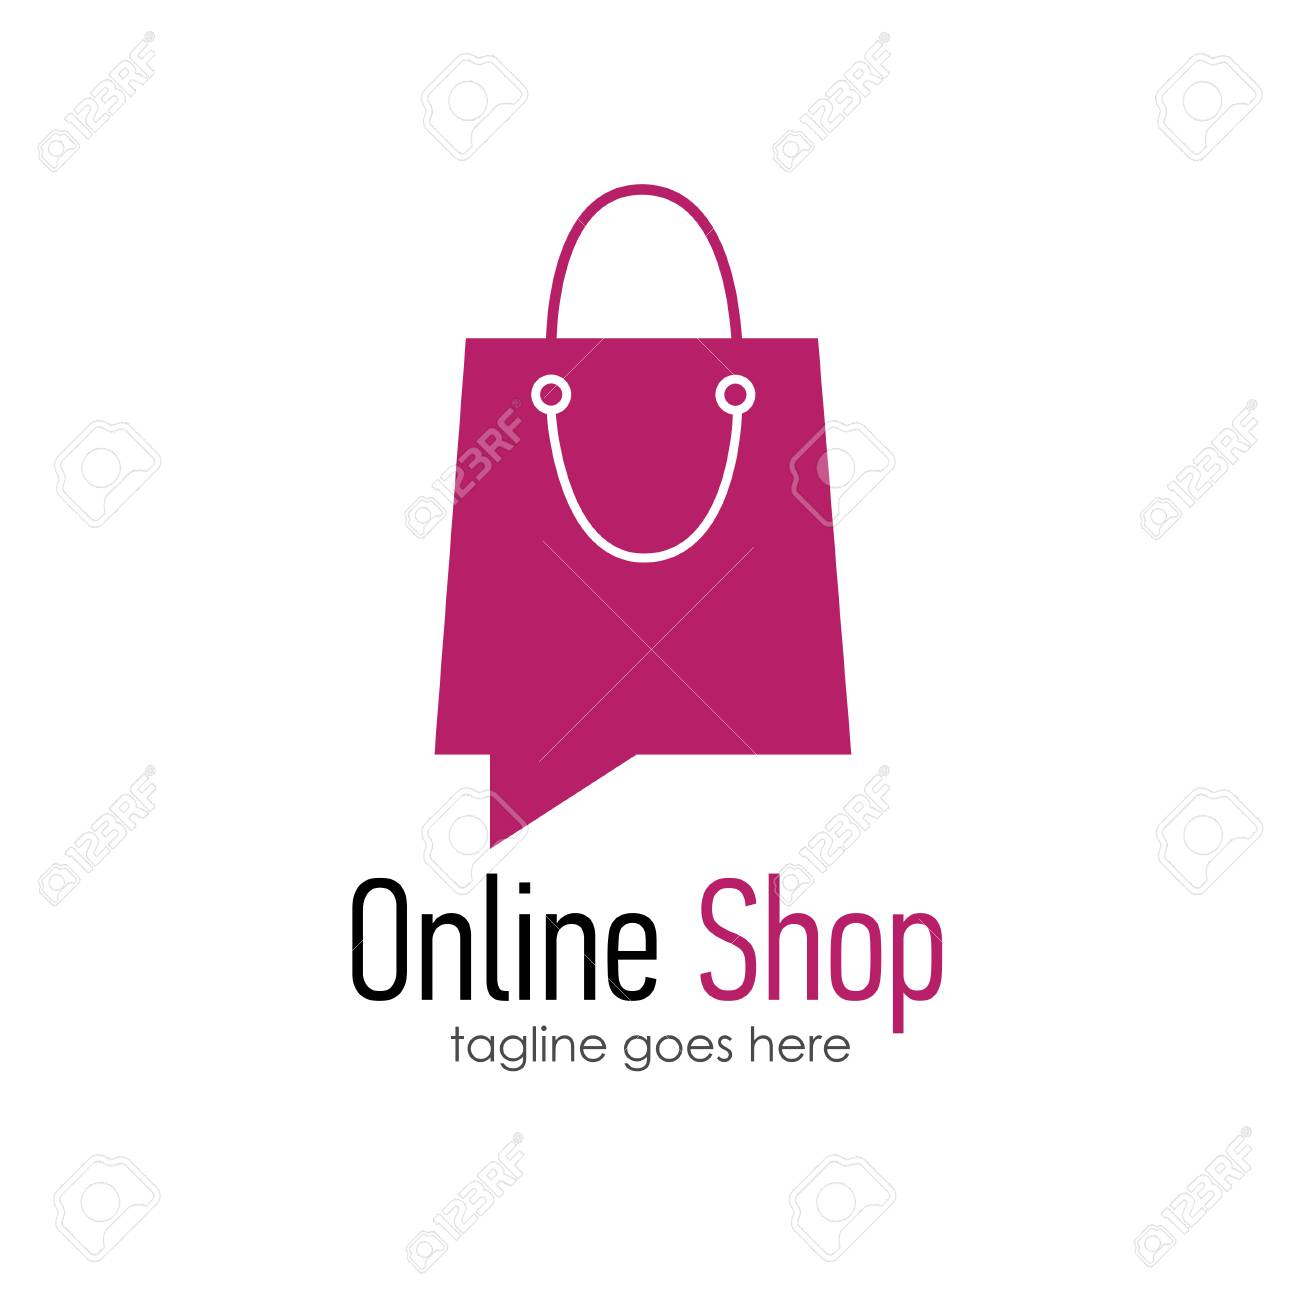 Design Online Shop Online Shop Logo Design Template